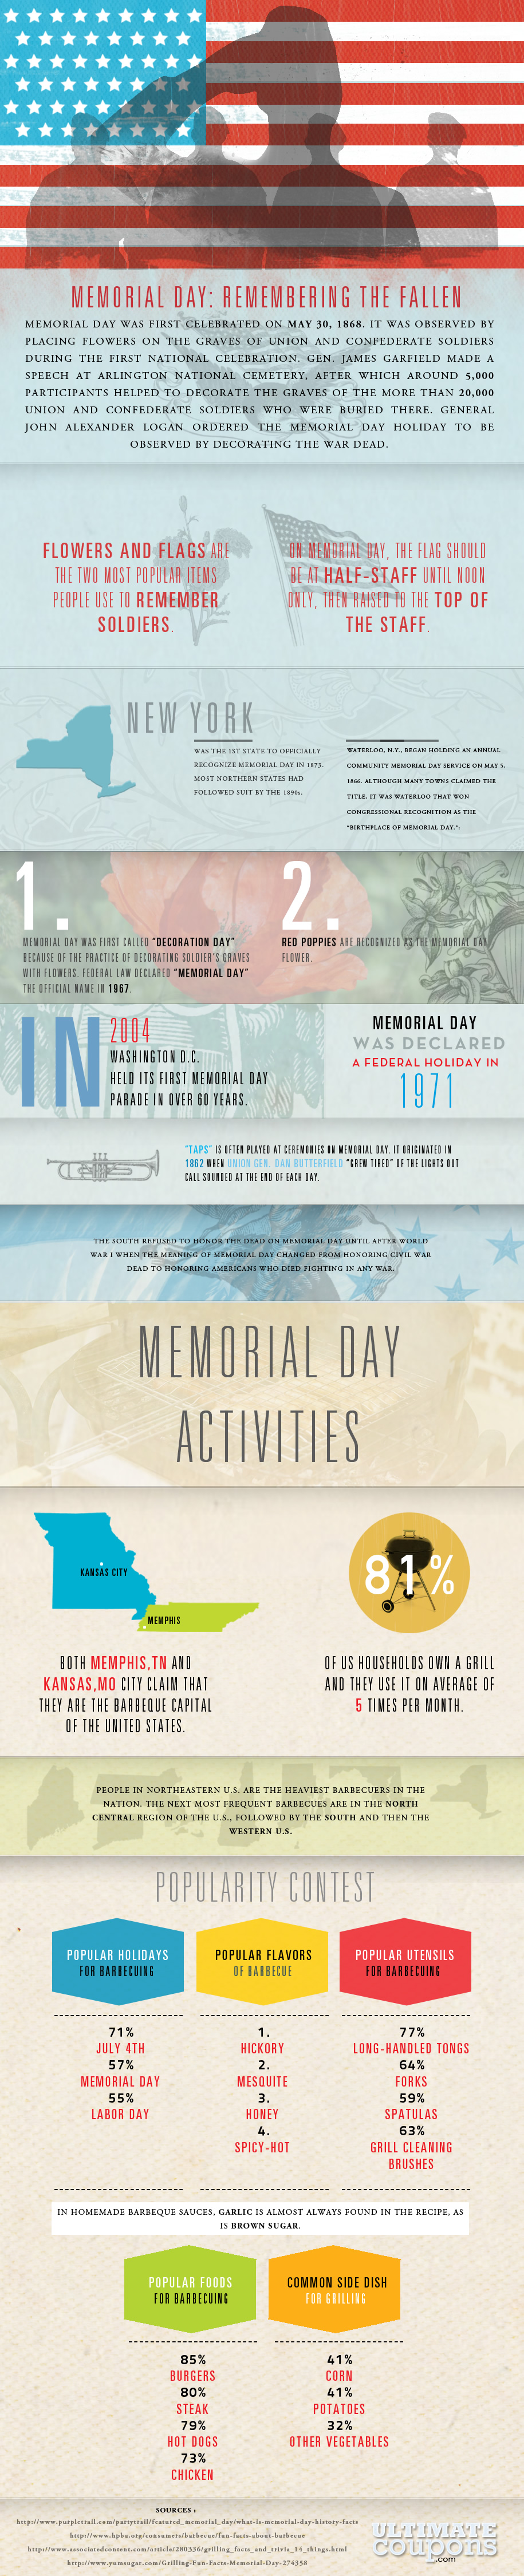 memorial day infographic Memorial Day: Remembering The Fallen